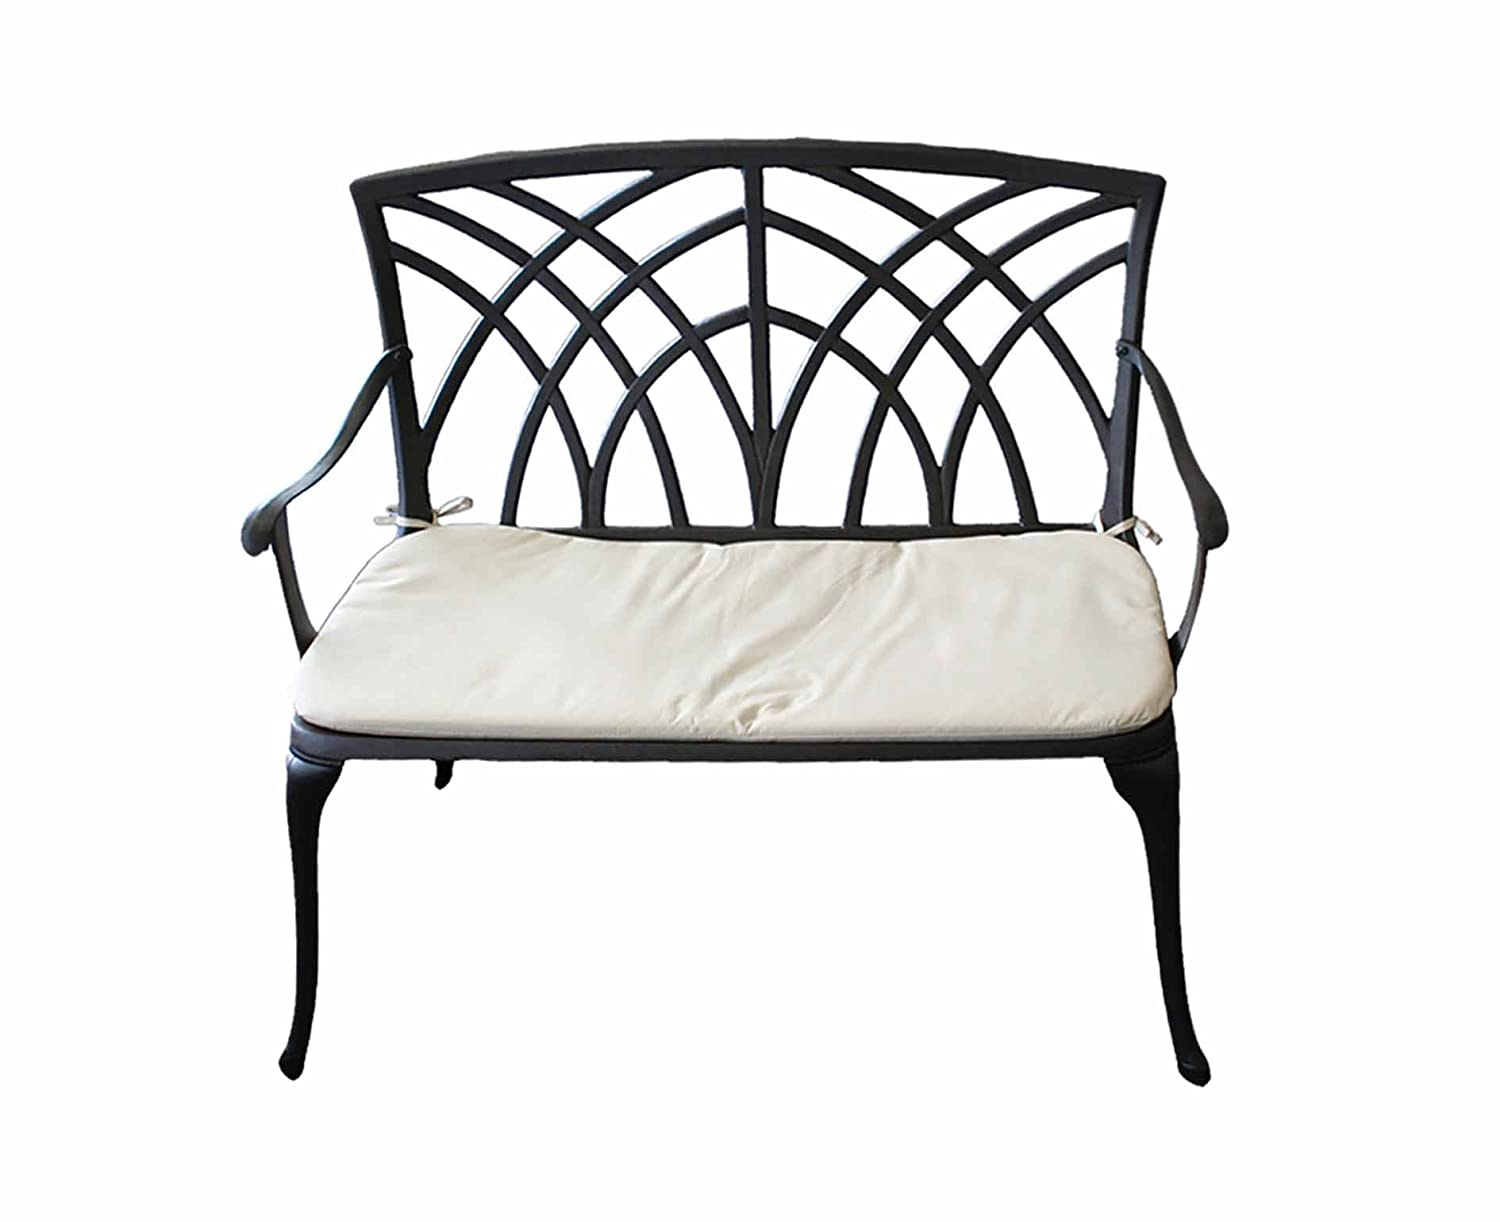 Charles Bentley Cast Aluminium Garden Bench 2 Seater - Color: Black